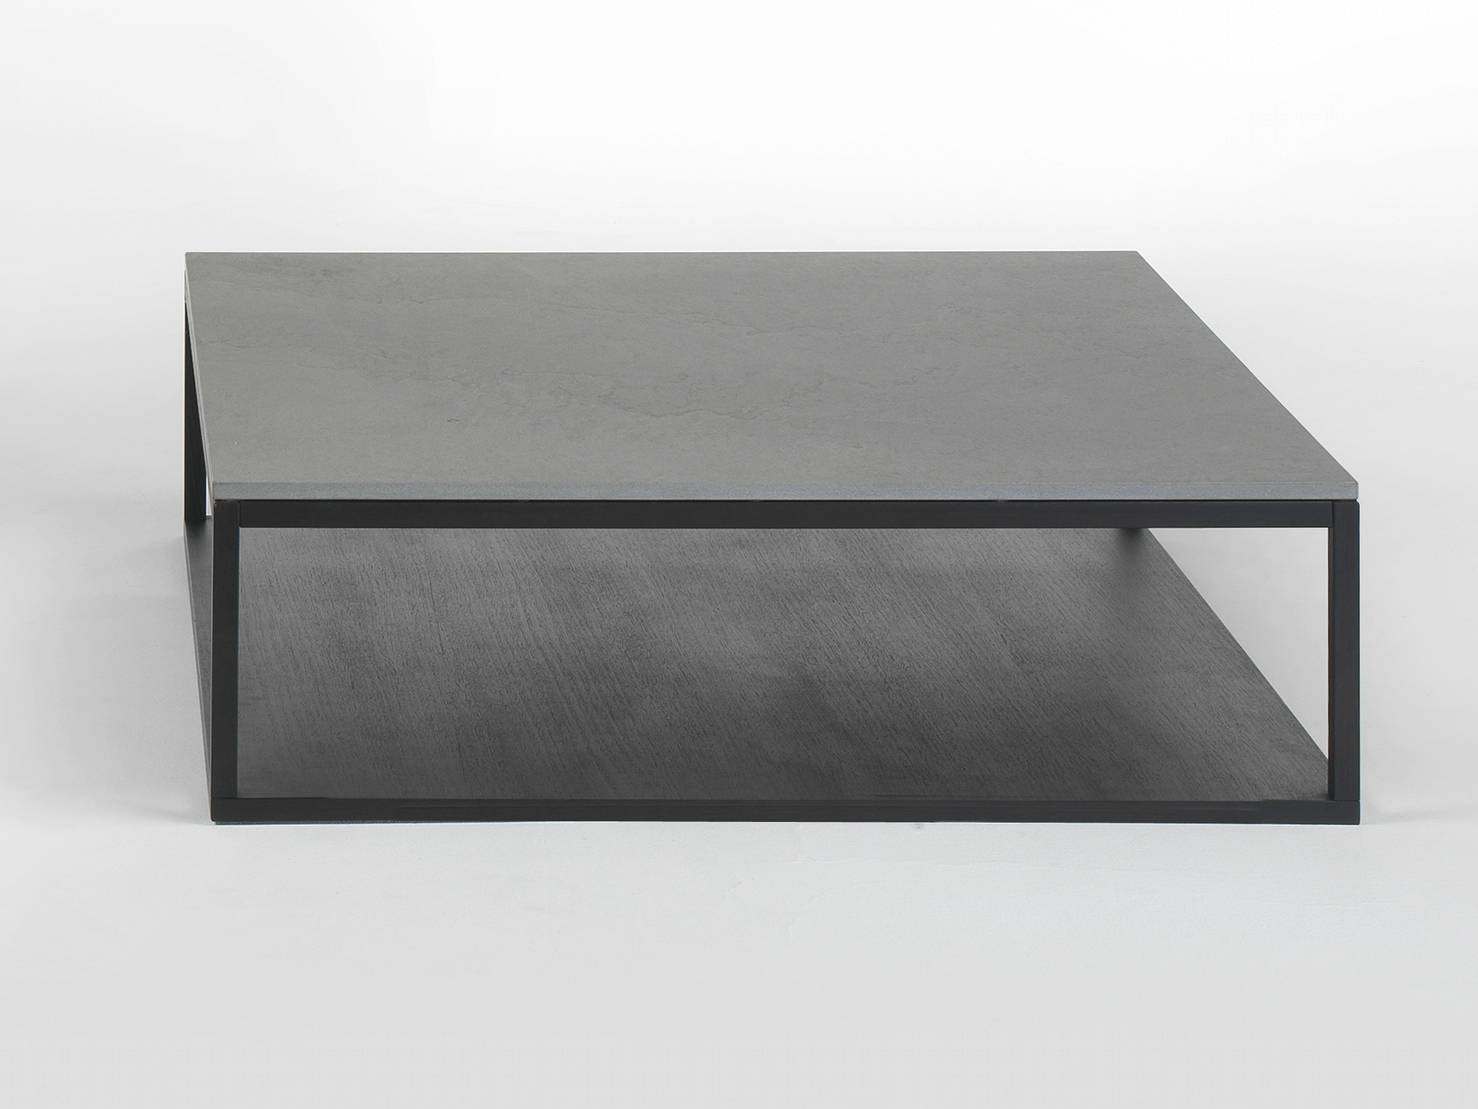 Low Black Square Coffee Table | Coffee Tables Decoration For Large Square Low Coffee Tables (View 5 of 30)